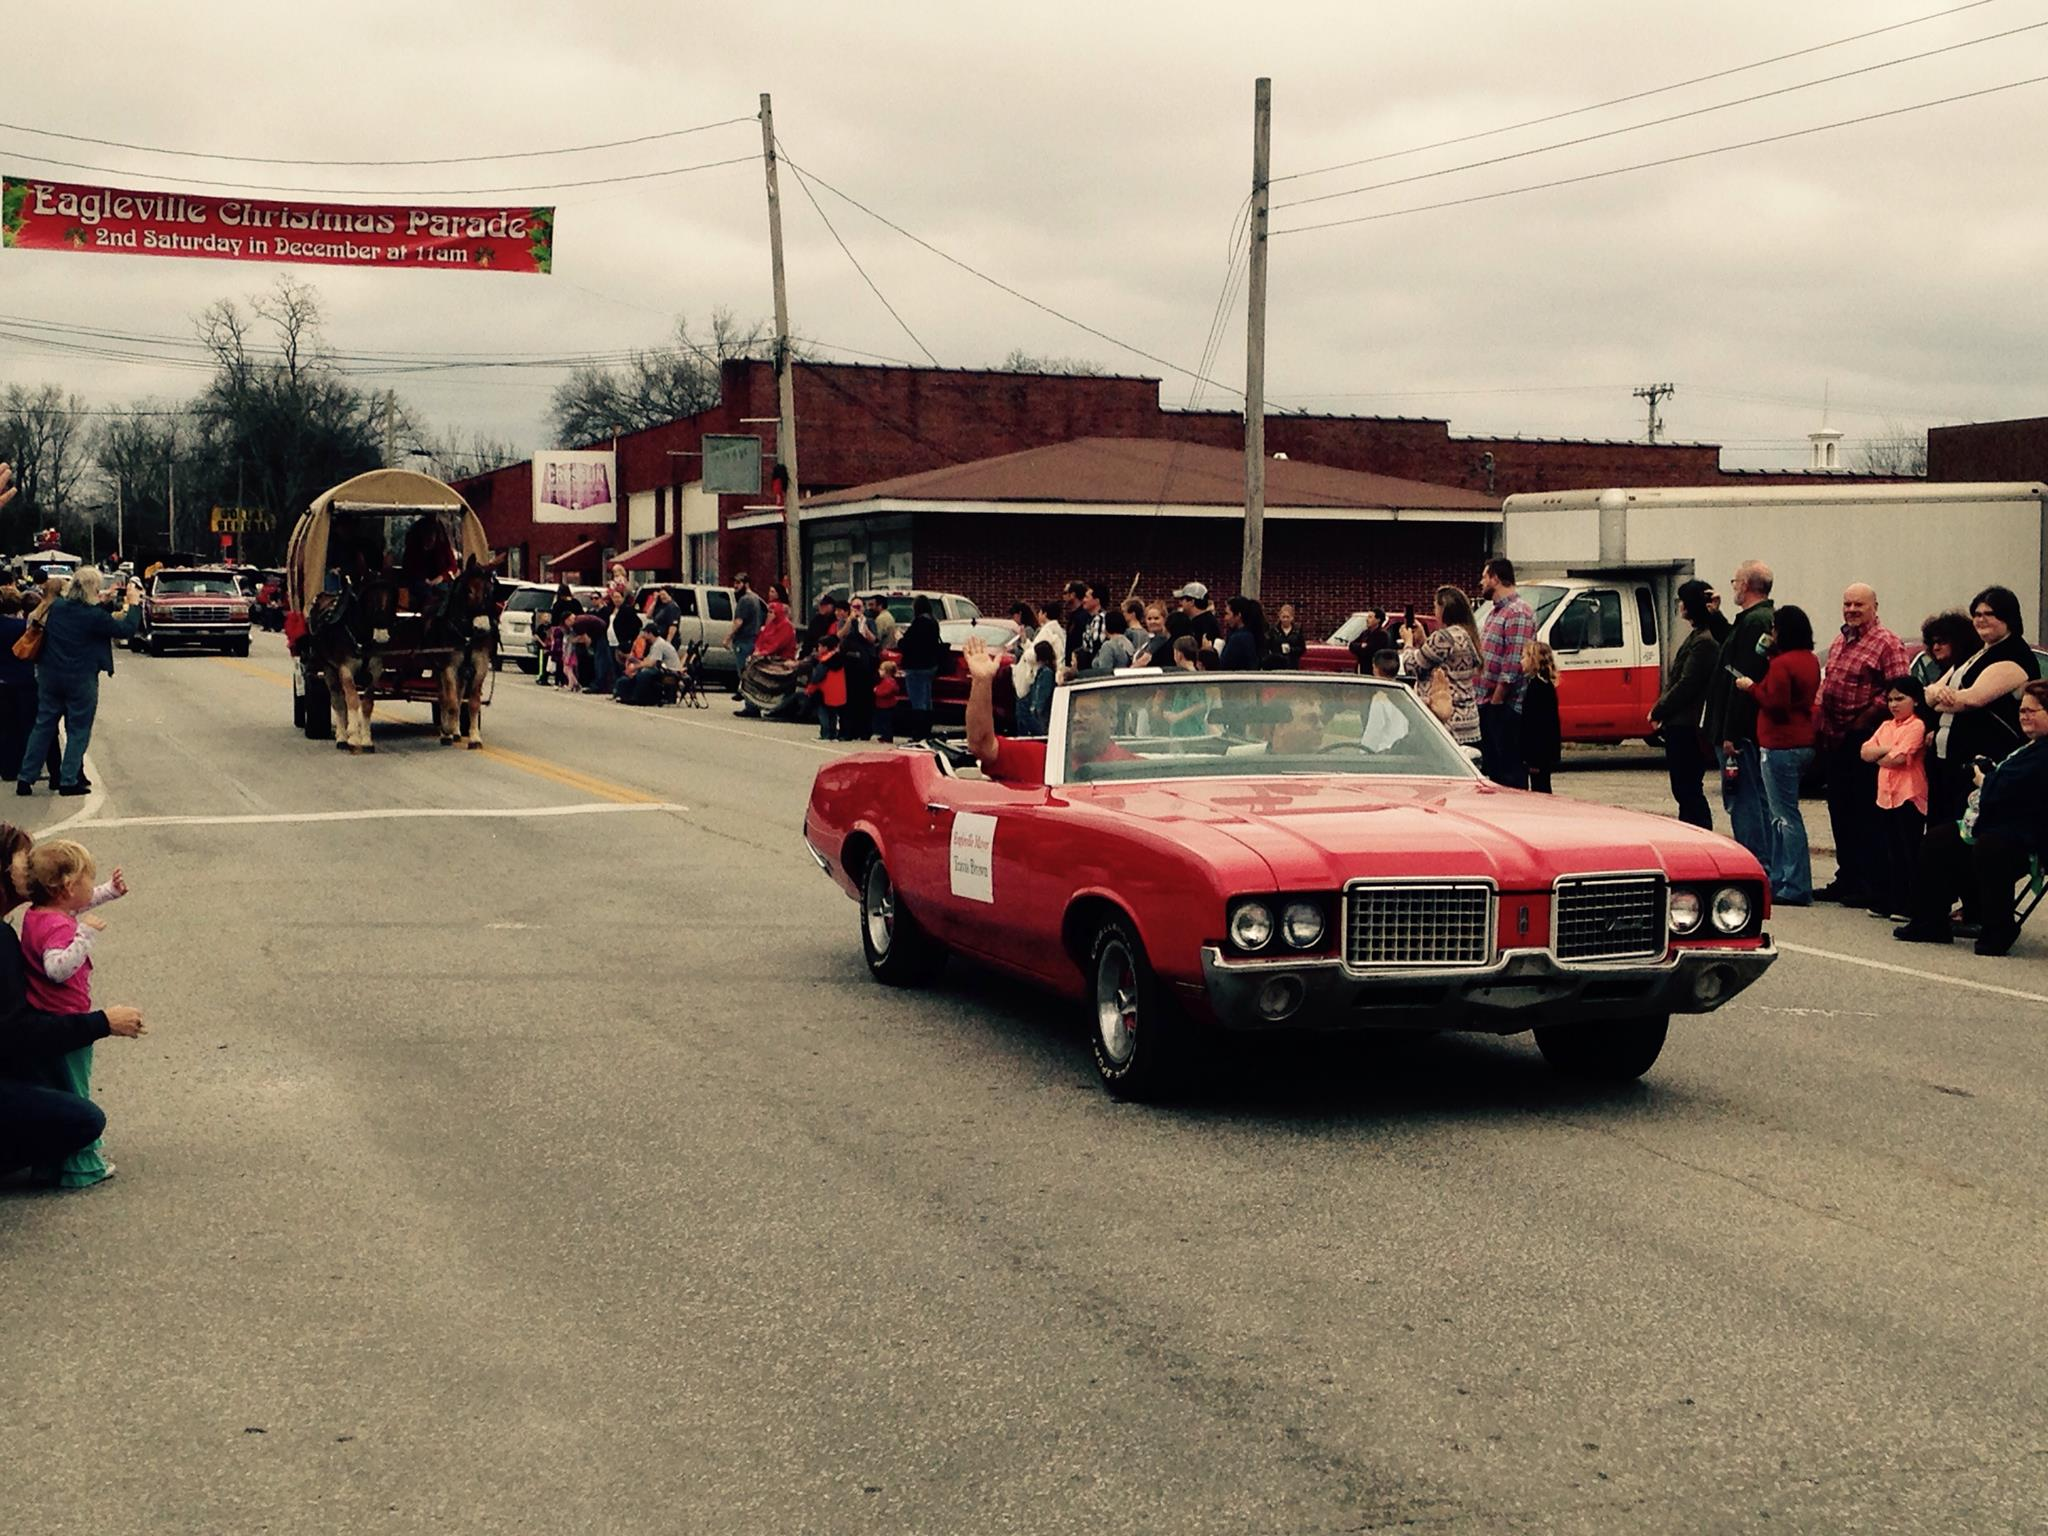 13th Annual Eagleville Christmas Parade